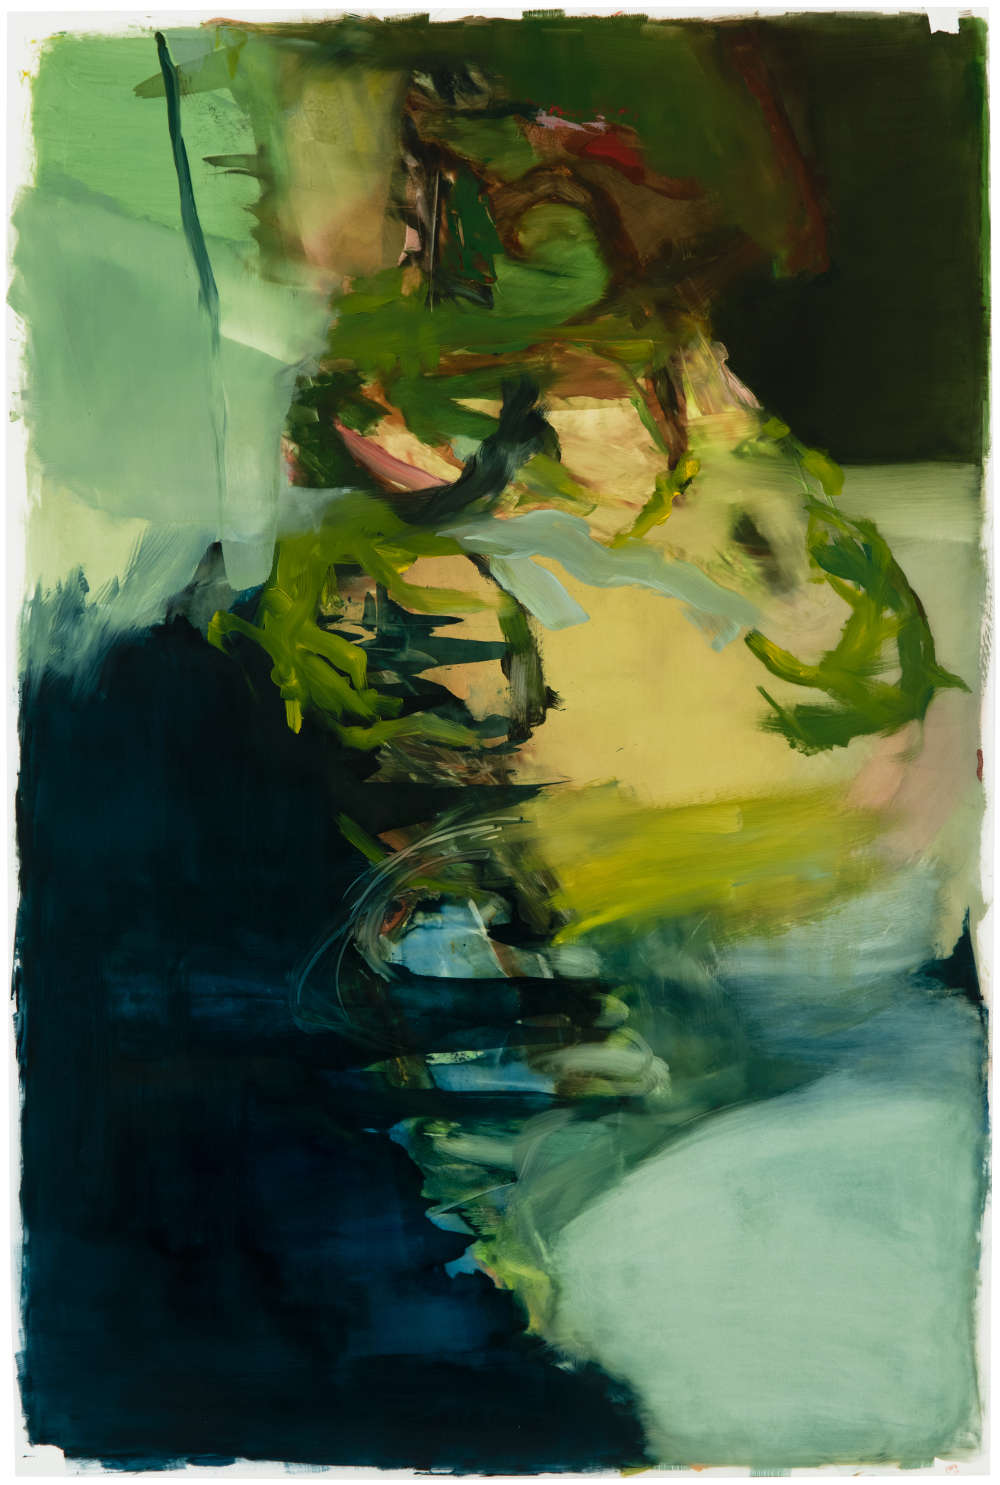 Hollis Heichemer (b. 1963), #1, 2019. Initialed and dated lower right: HAH / 19. Oil on Mylar mounted on board 36 x 24 inches